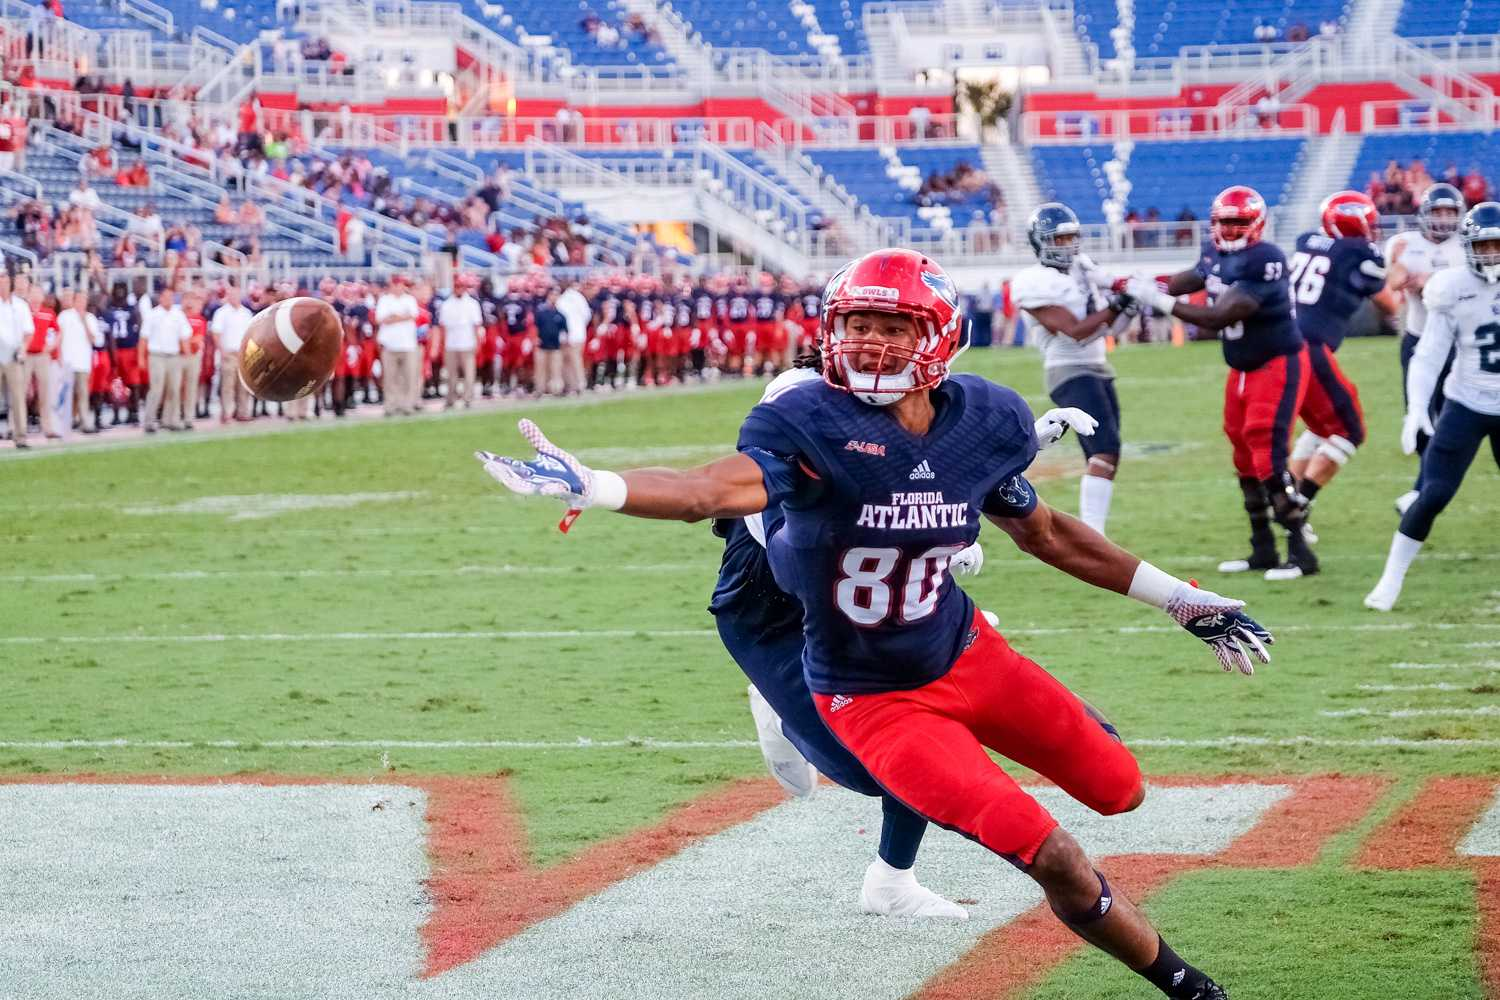 Sophomore tight end Nate Terry (80) reaches for a pass from redshirt freshman quarterback Jason Driskel (16) during a two-point conversion attempt in the fourth quarter. The failed conversion was the first play for FAU after a 90 minute long weather delay. Mohammed F Emran | Asst. Creative Director